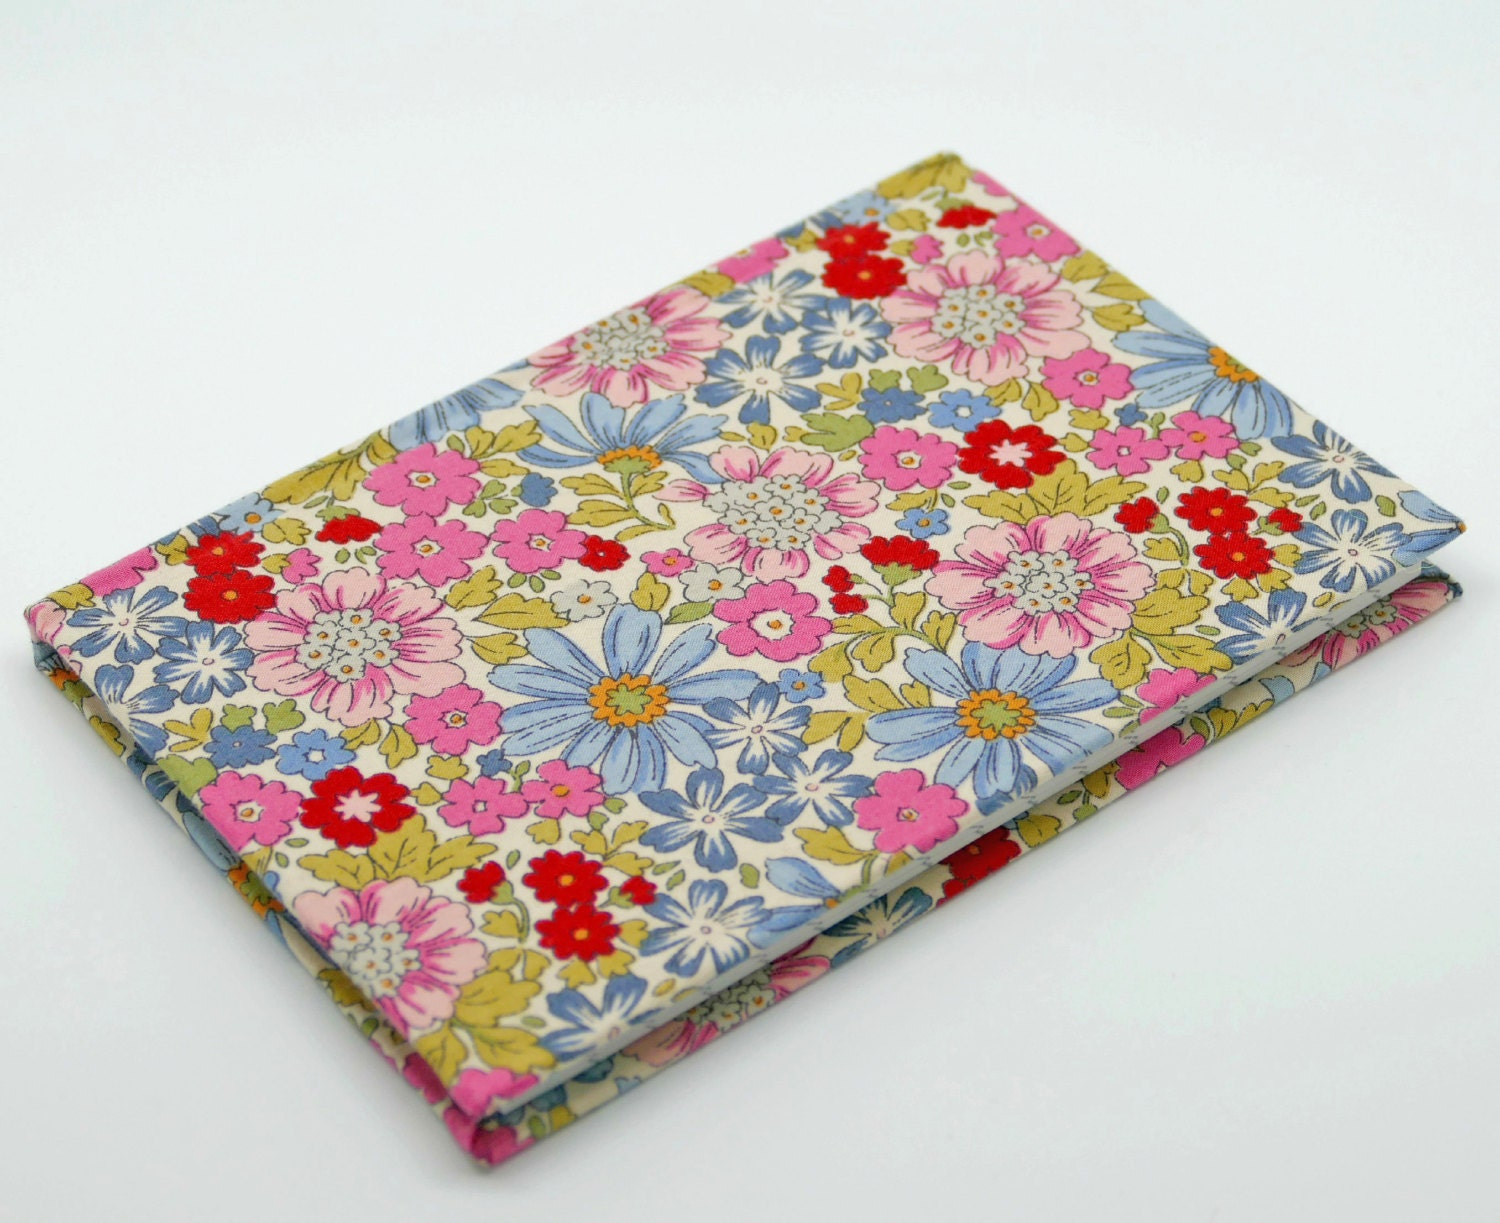 Fabric Hardcover Book : Fabric covered notebook lined notepad floral book hardback